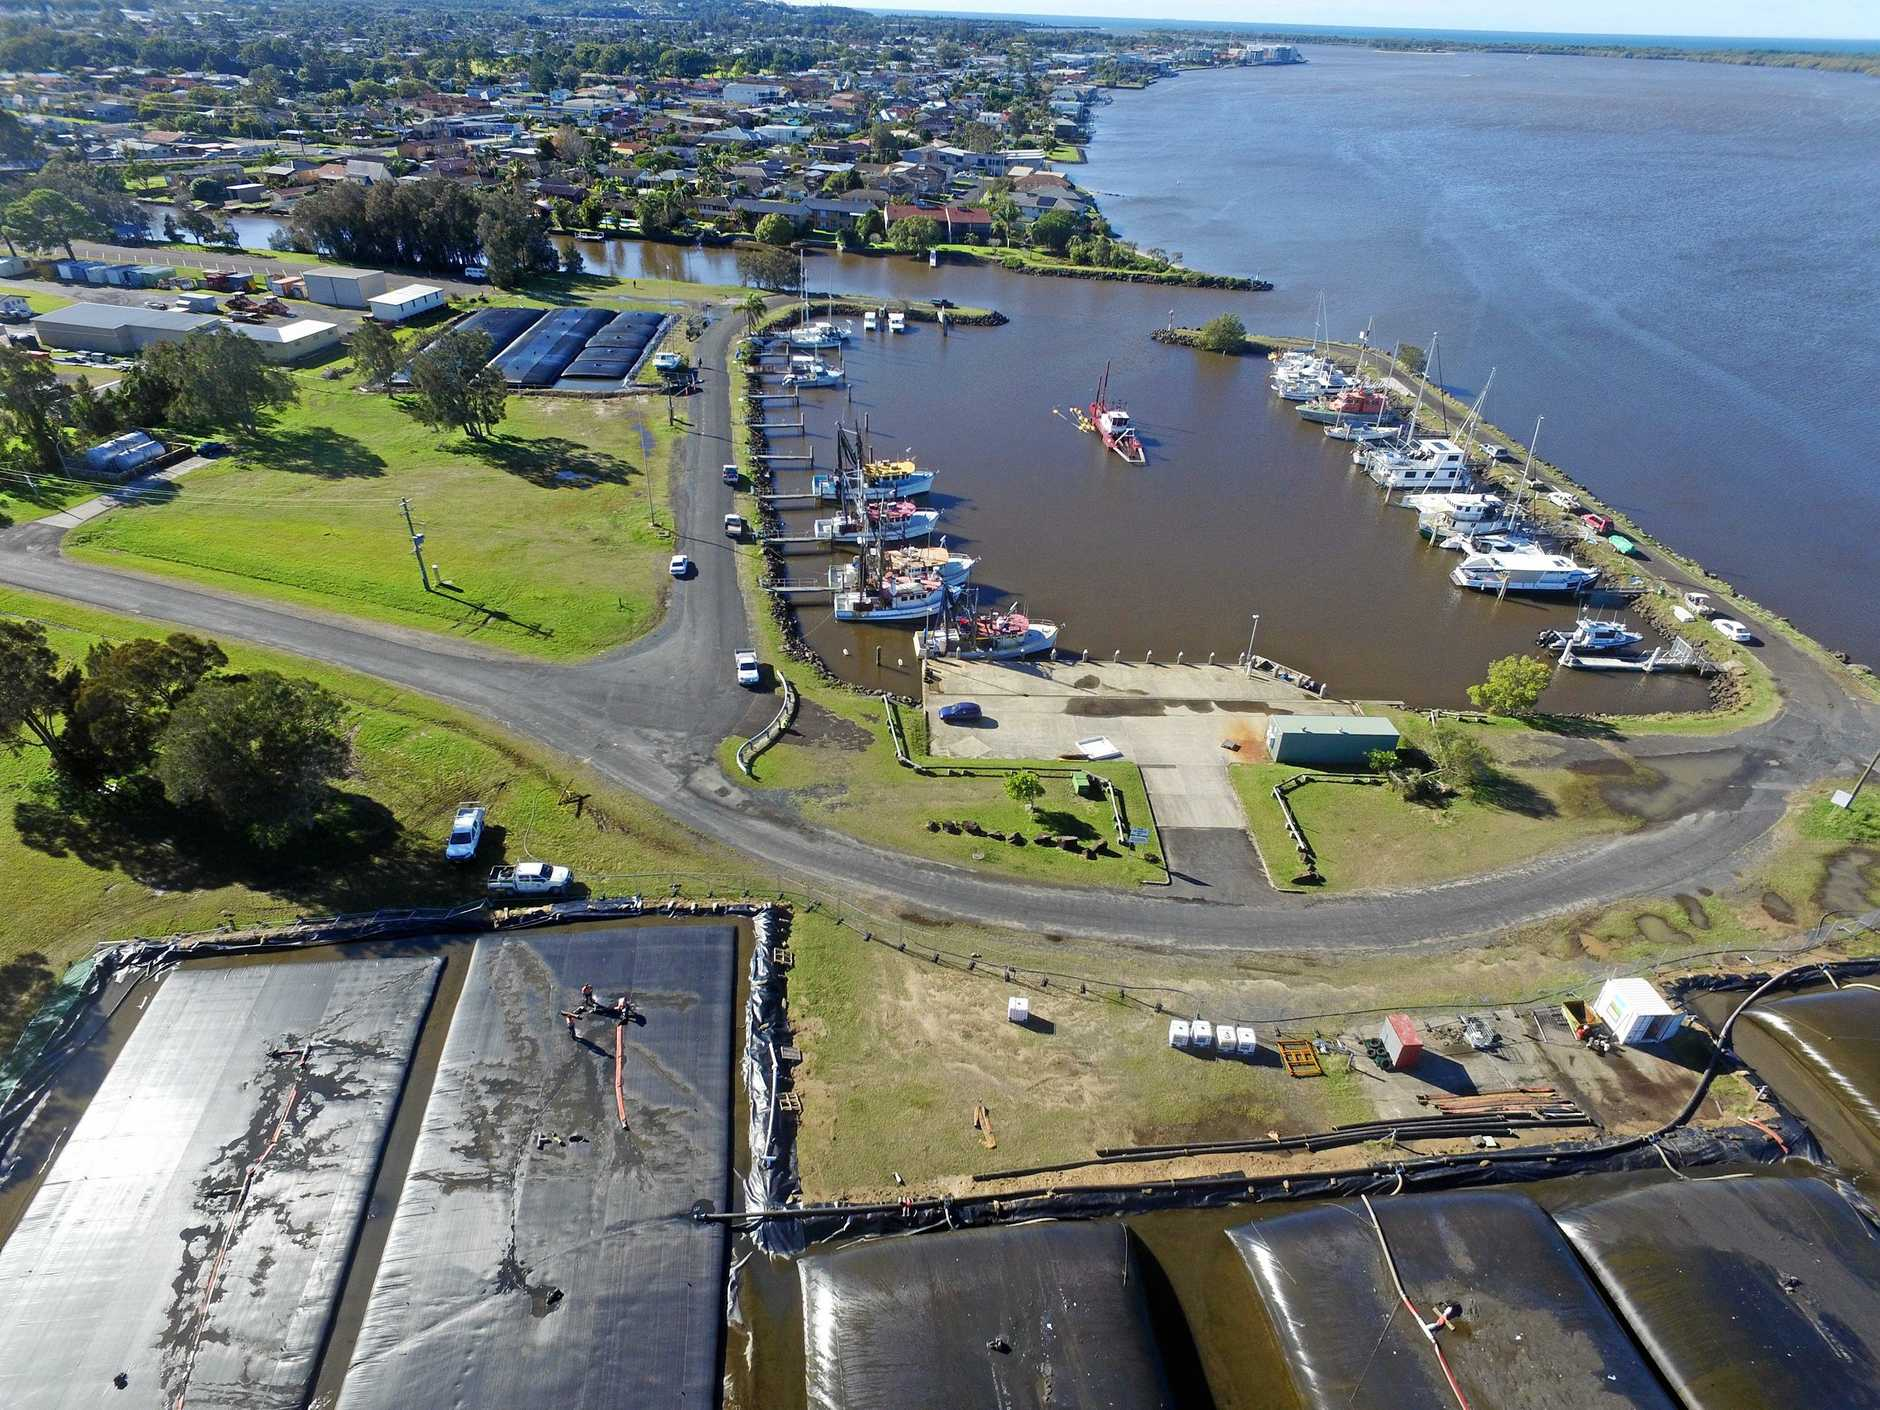 The Ballina boat harbour